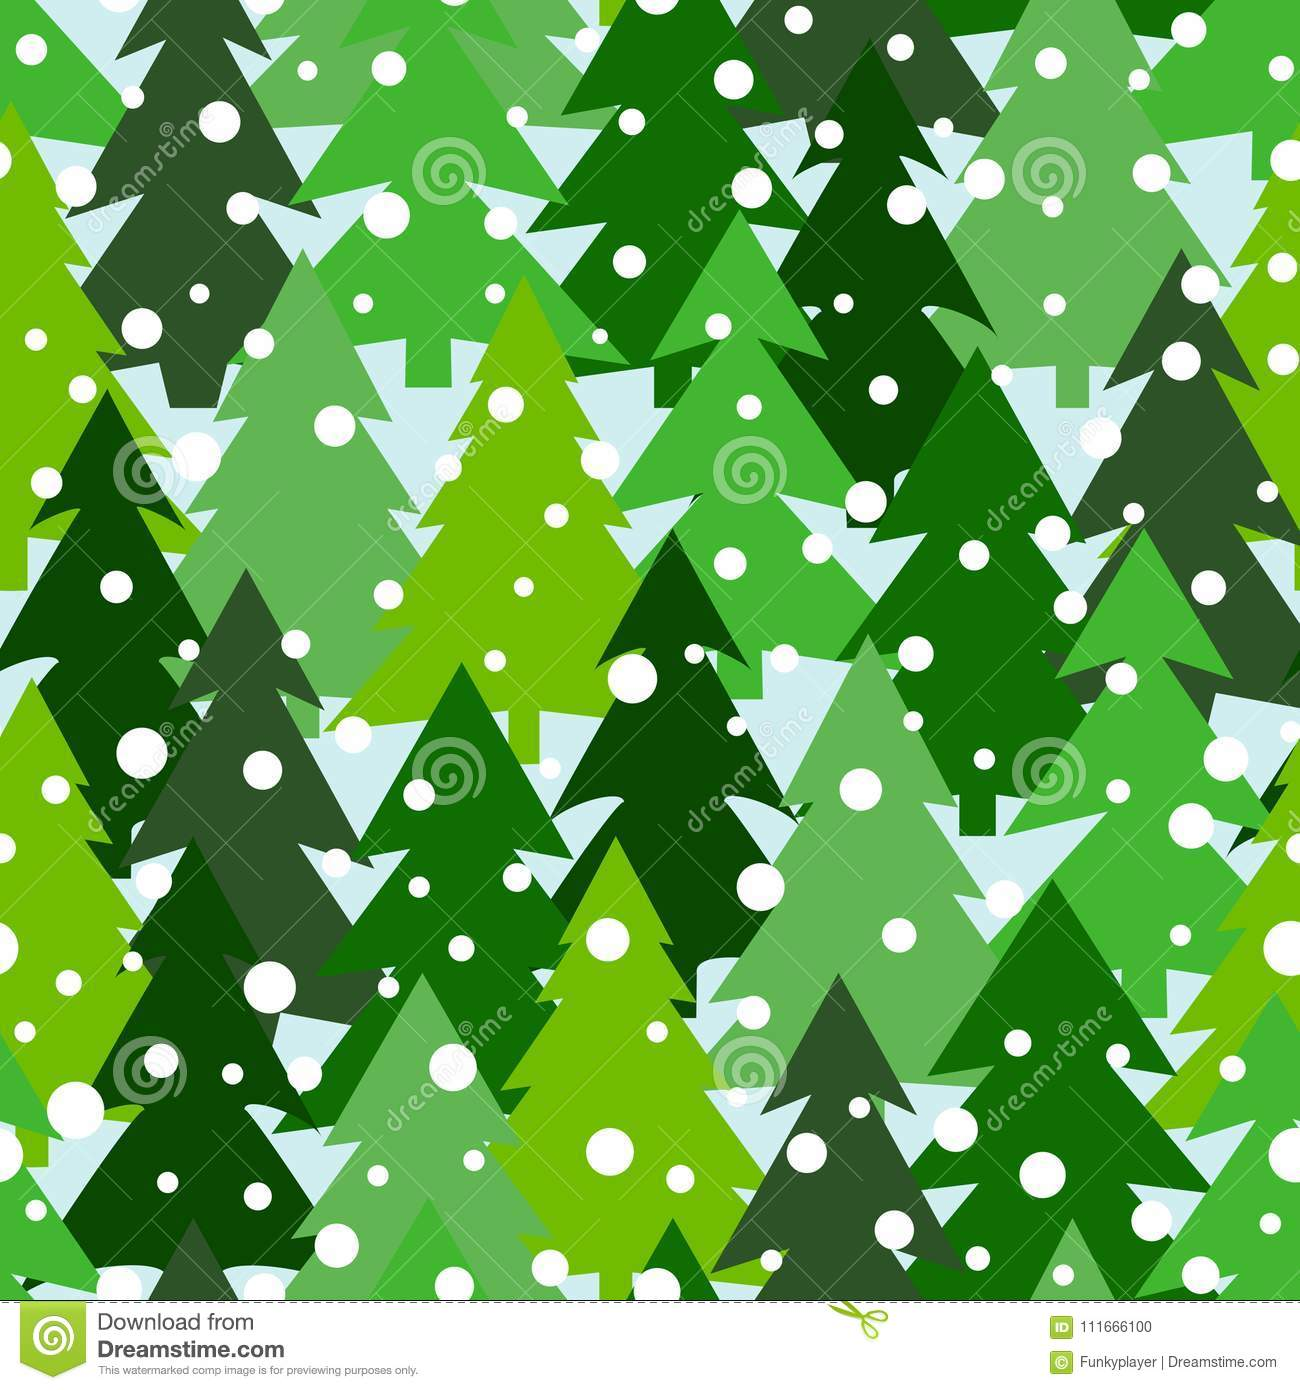 Seamless pattern with green silhouettes of fir-trees and pines. Winter forest background. Scrapbook digital paper